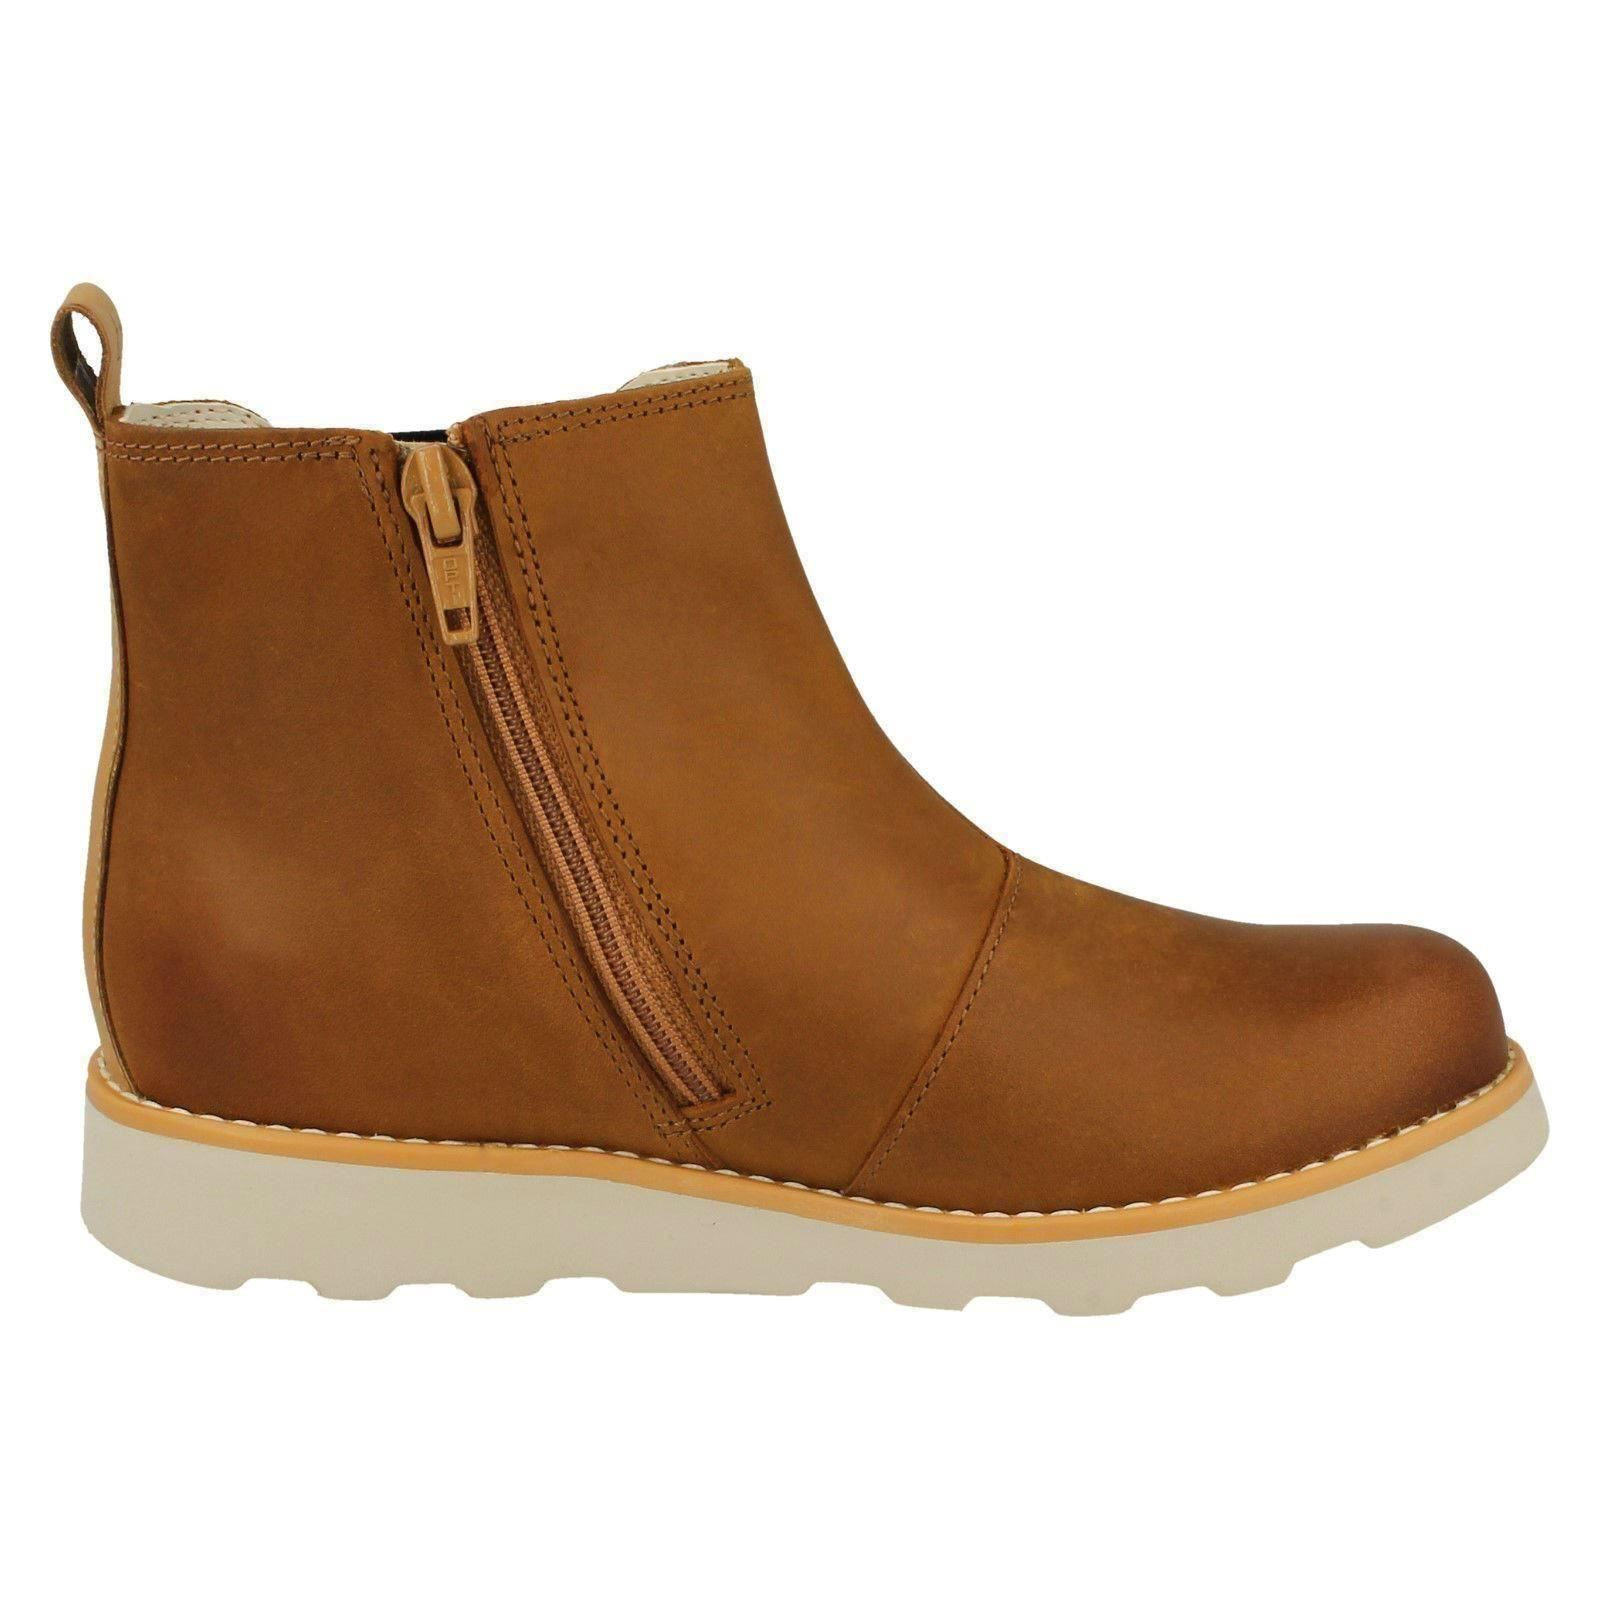 Boys Clarks Gusset Detail Casual Zip Leather Ankle Boots Crown Halo